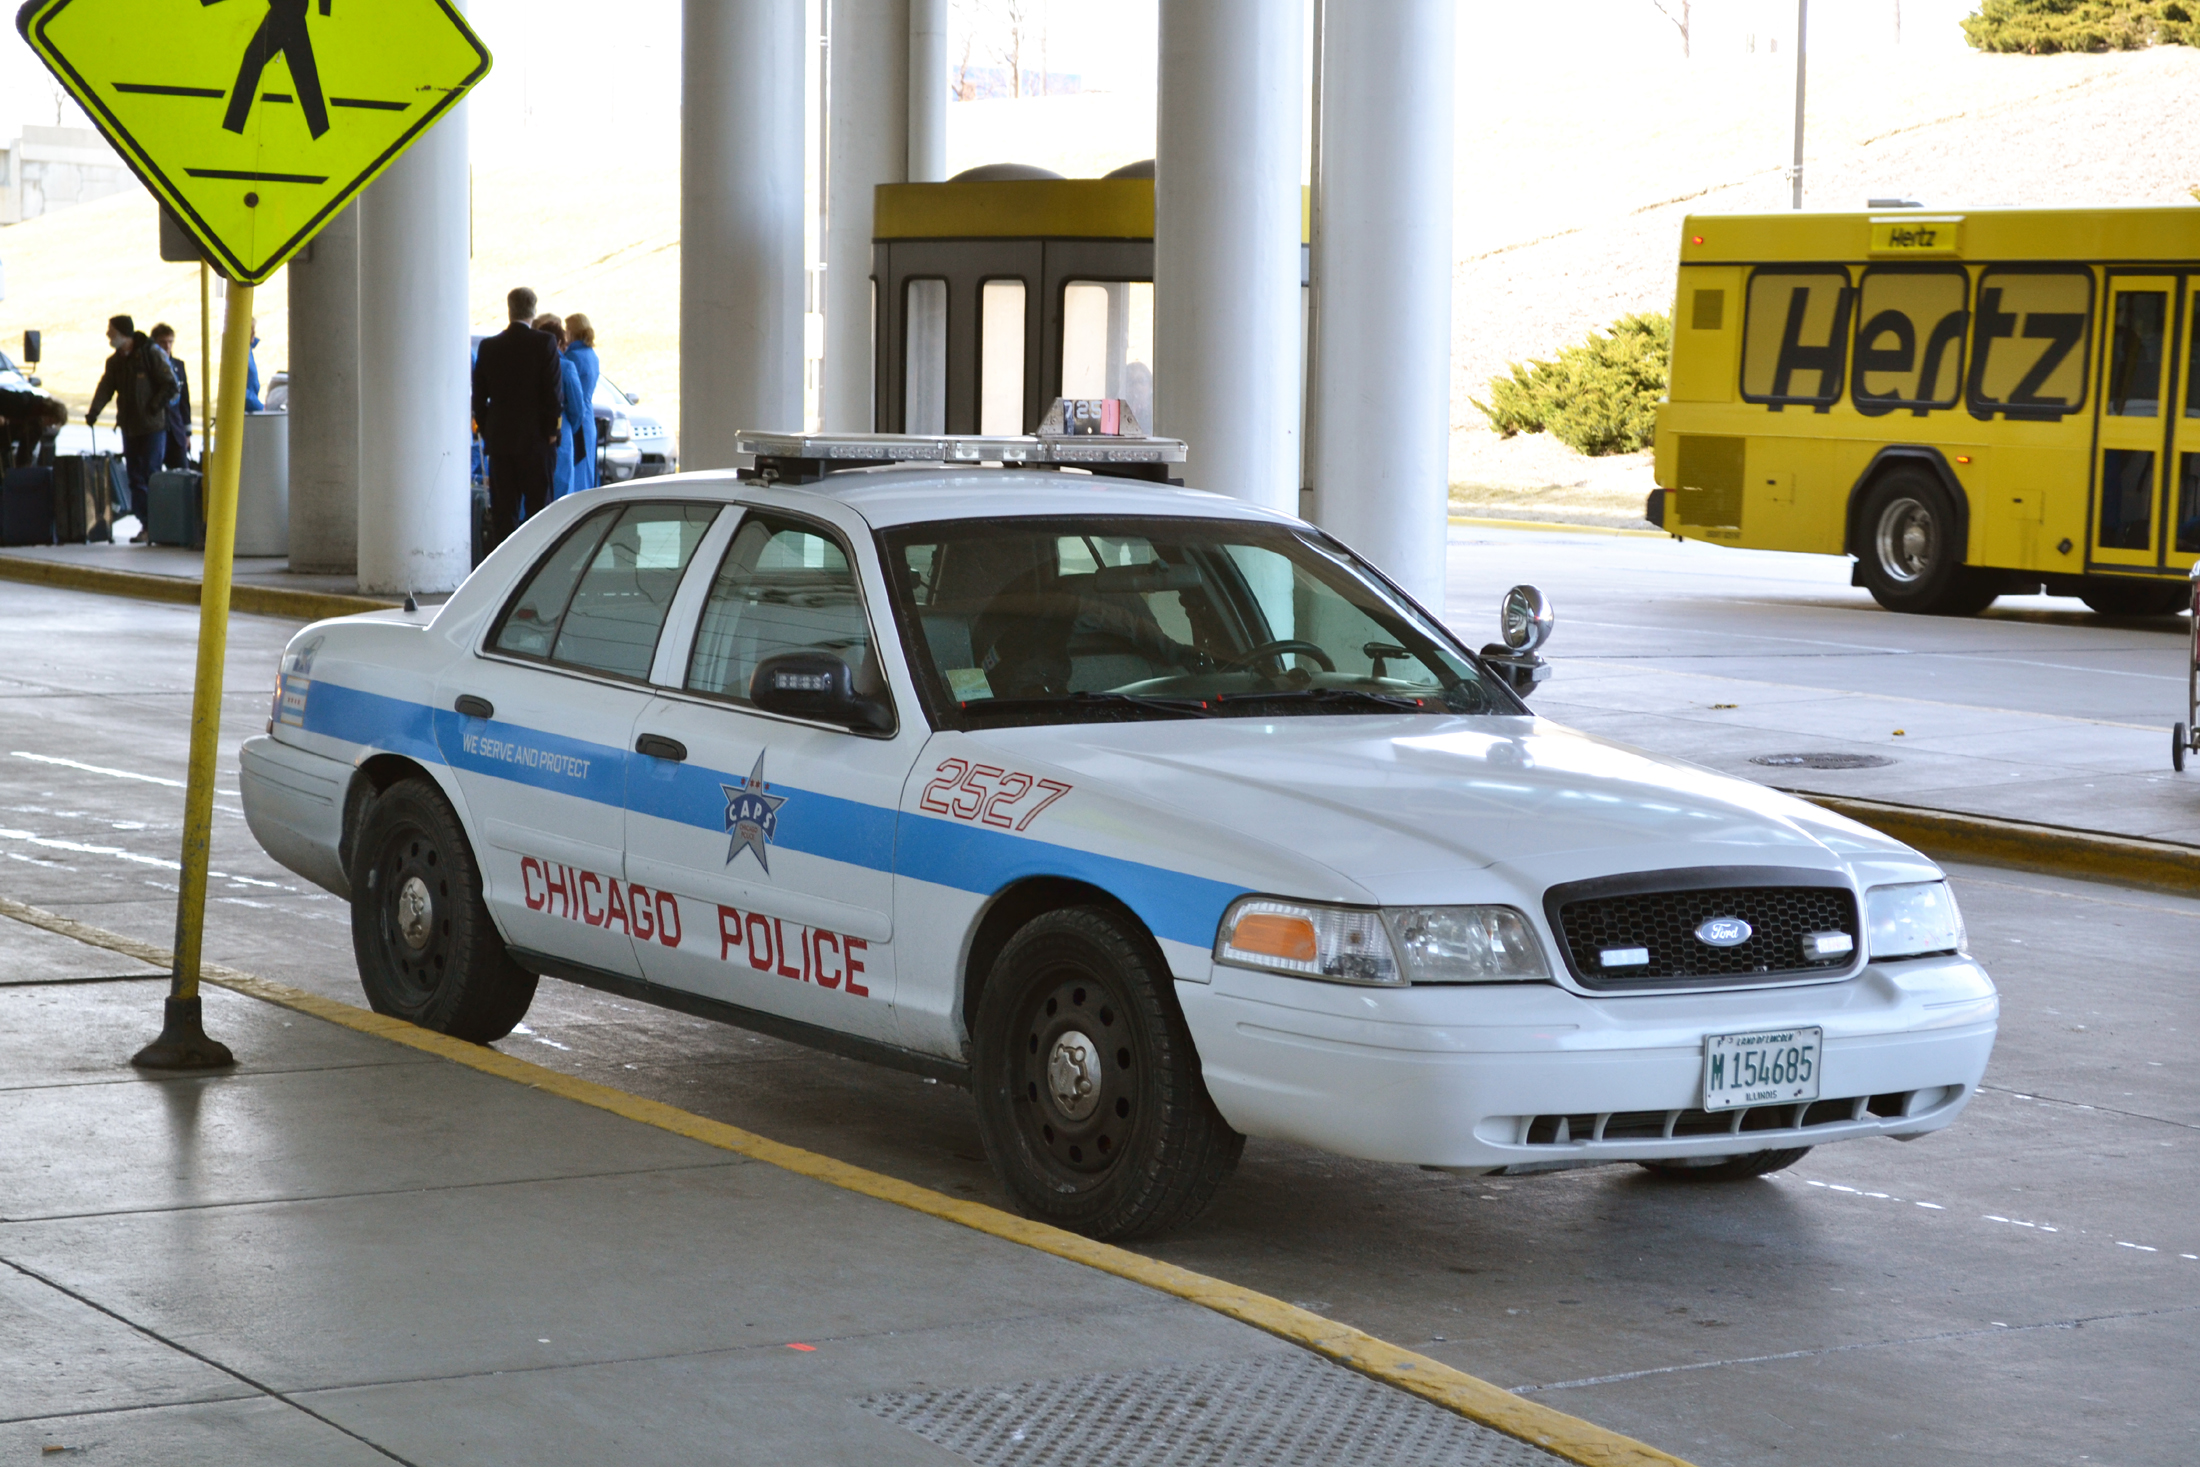 Washington Ford Pa >> IL, Chicago Police Department Airport